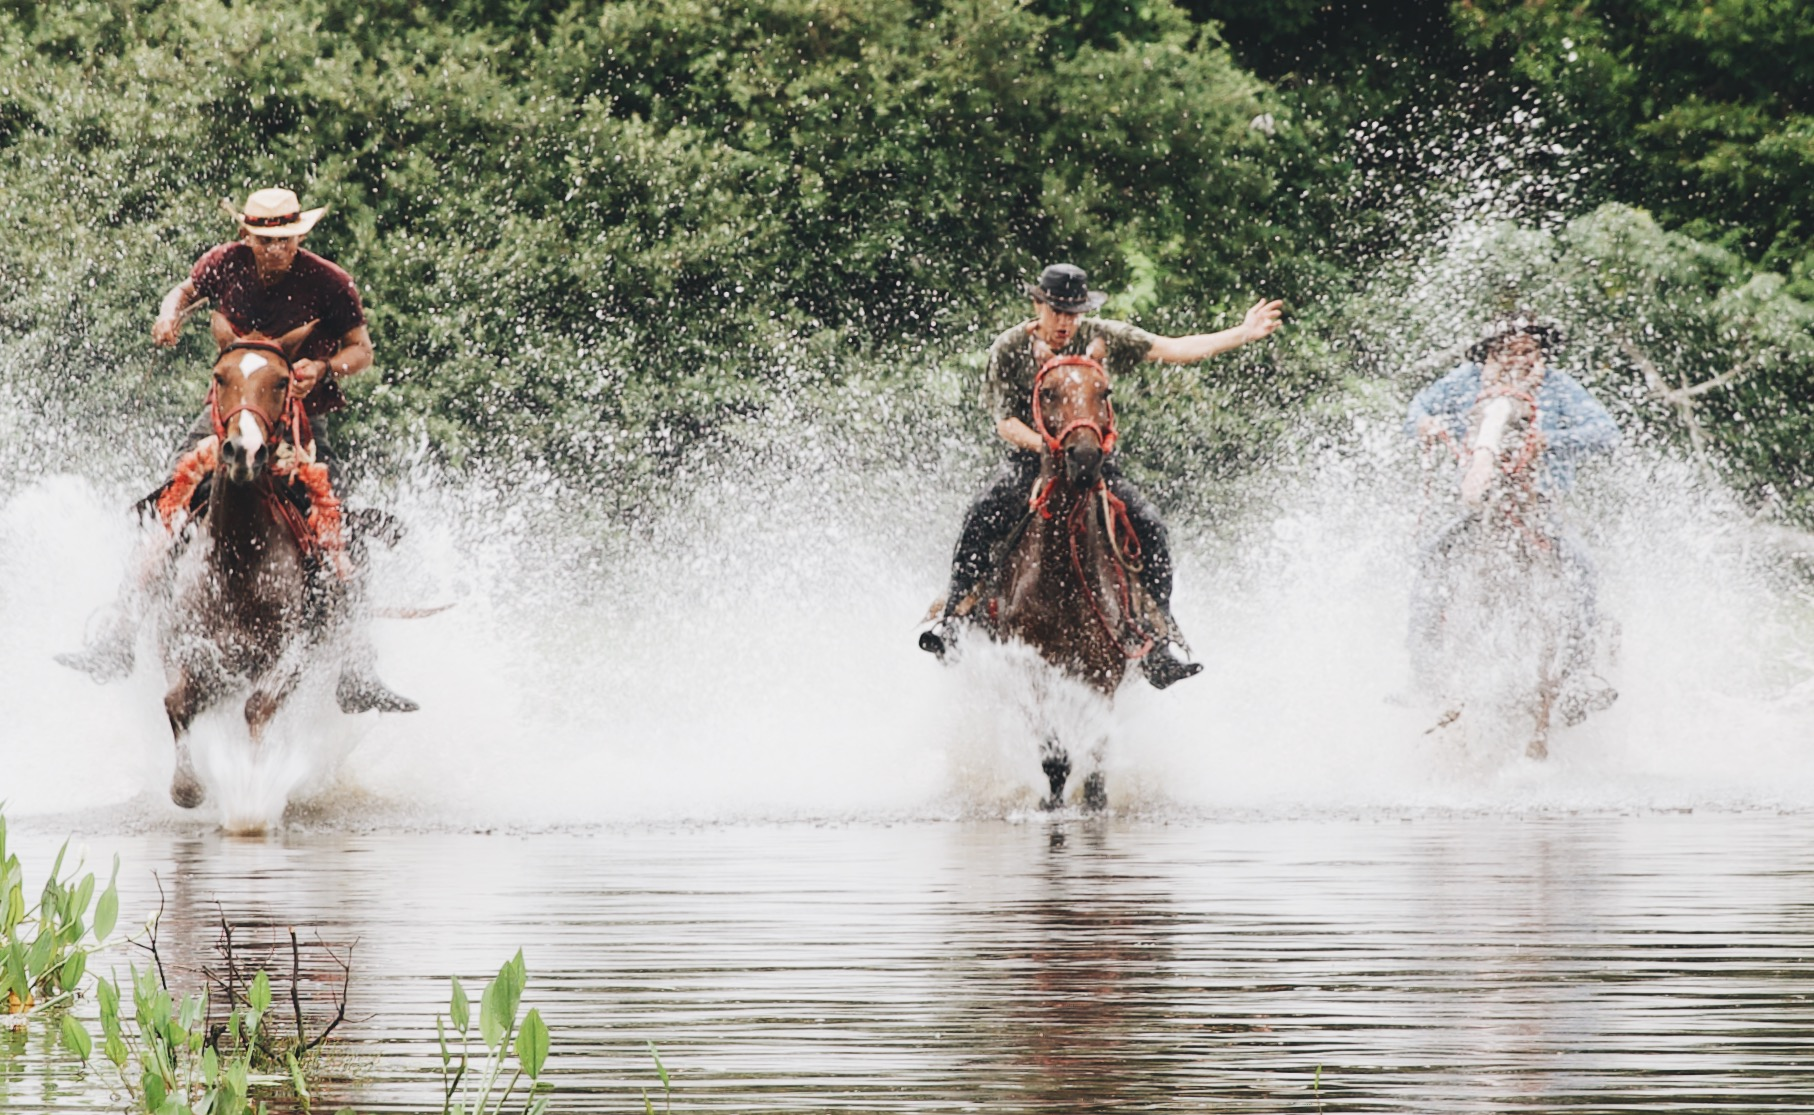 Racing with local cowboys, through the biggest wetland area in the world — Pantanal, Brazil